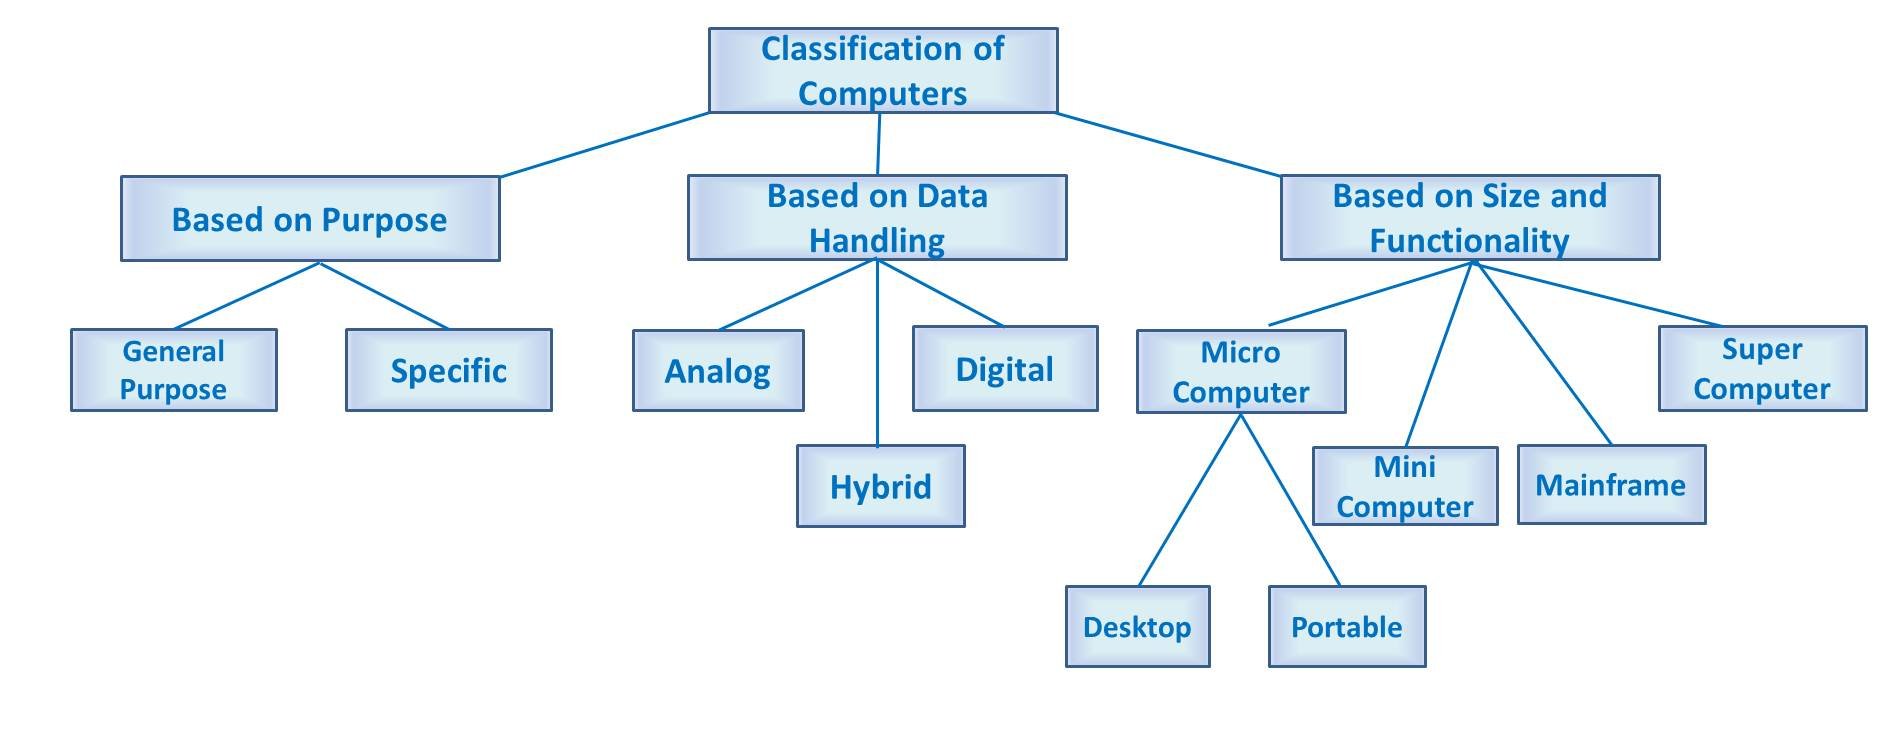 What are the classifications of computer